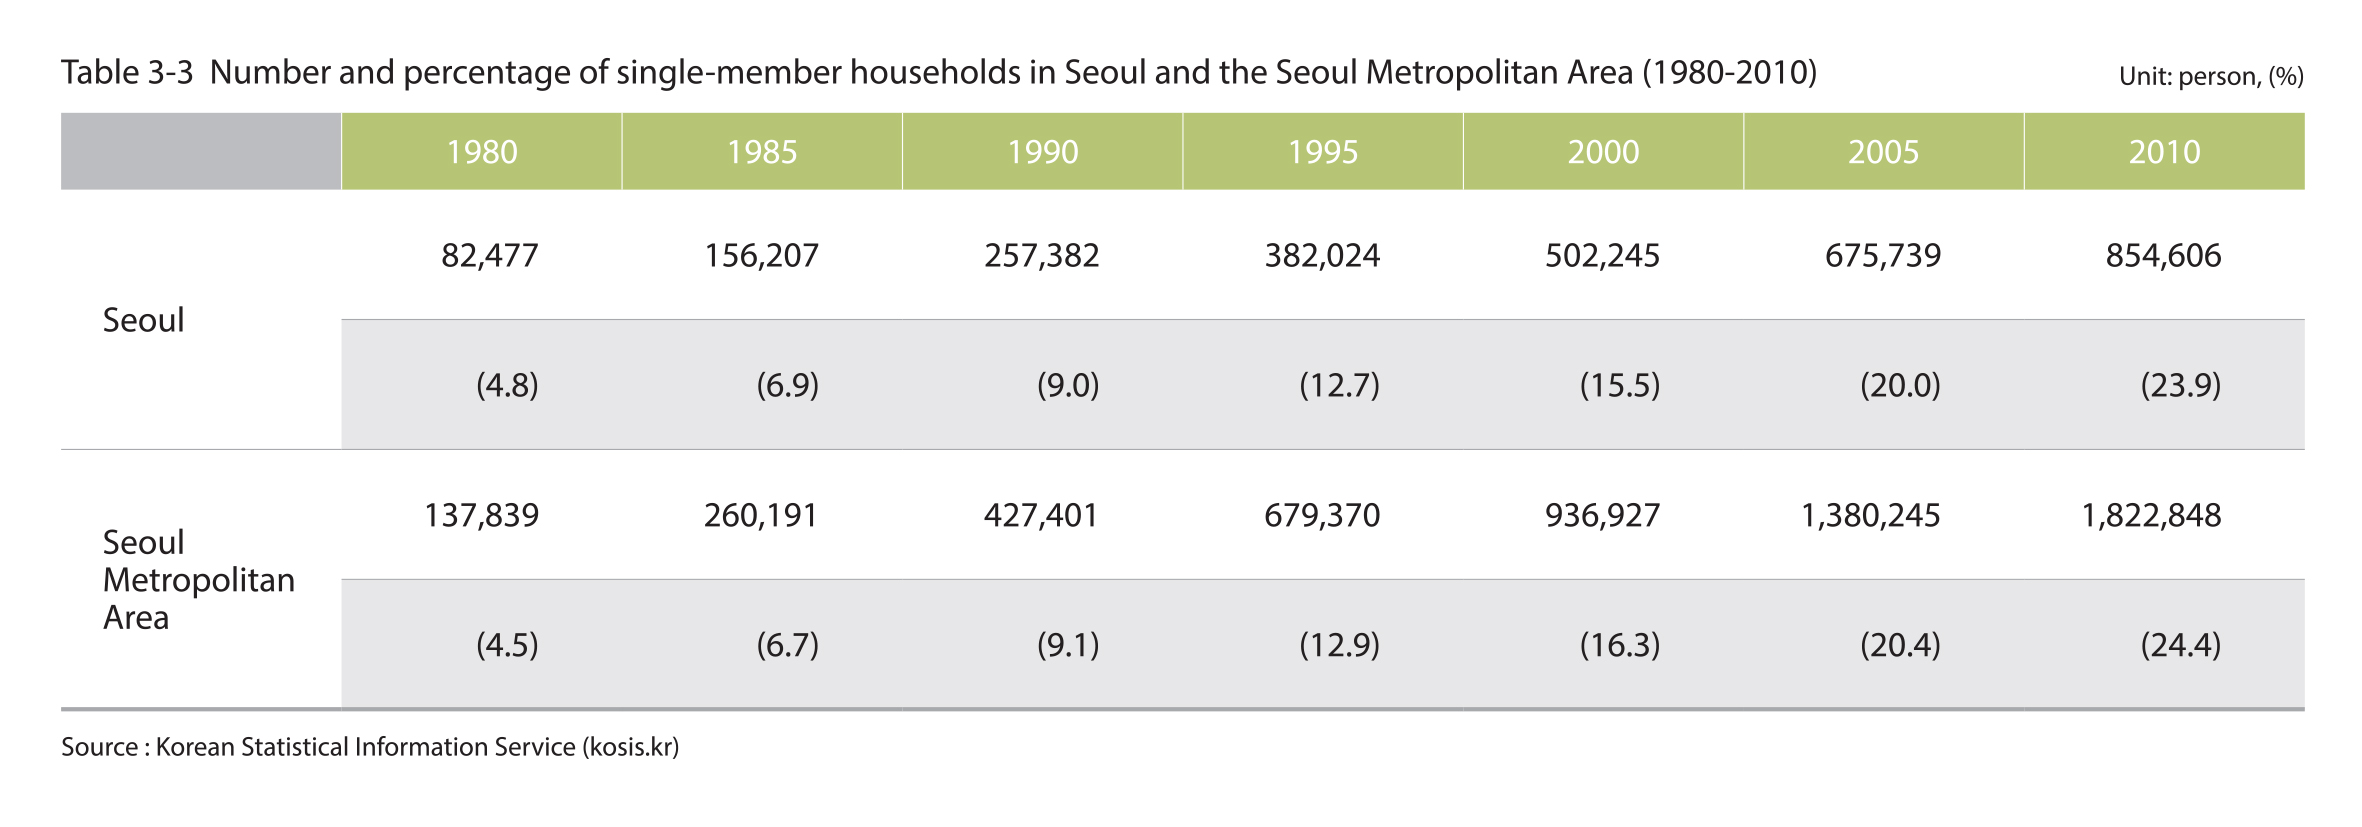 Number and percentage of single-member household in Seoul and the Seoul Metropolitan Area (1980-2010)